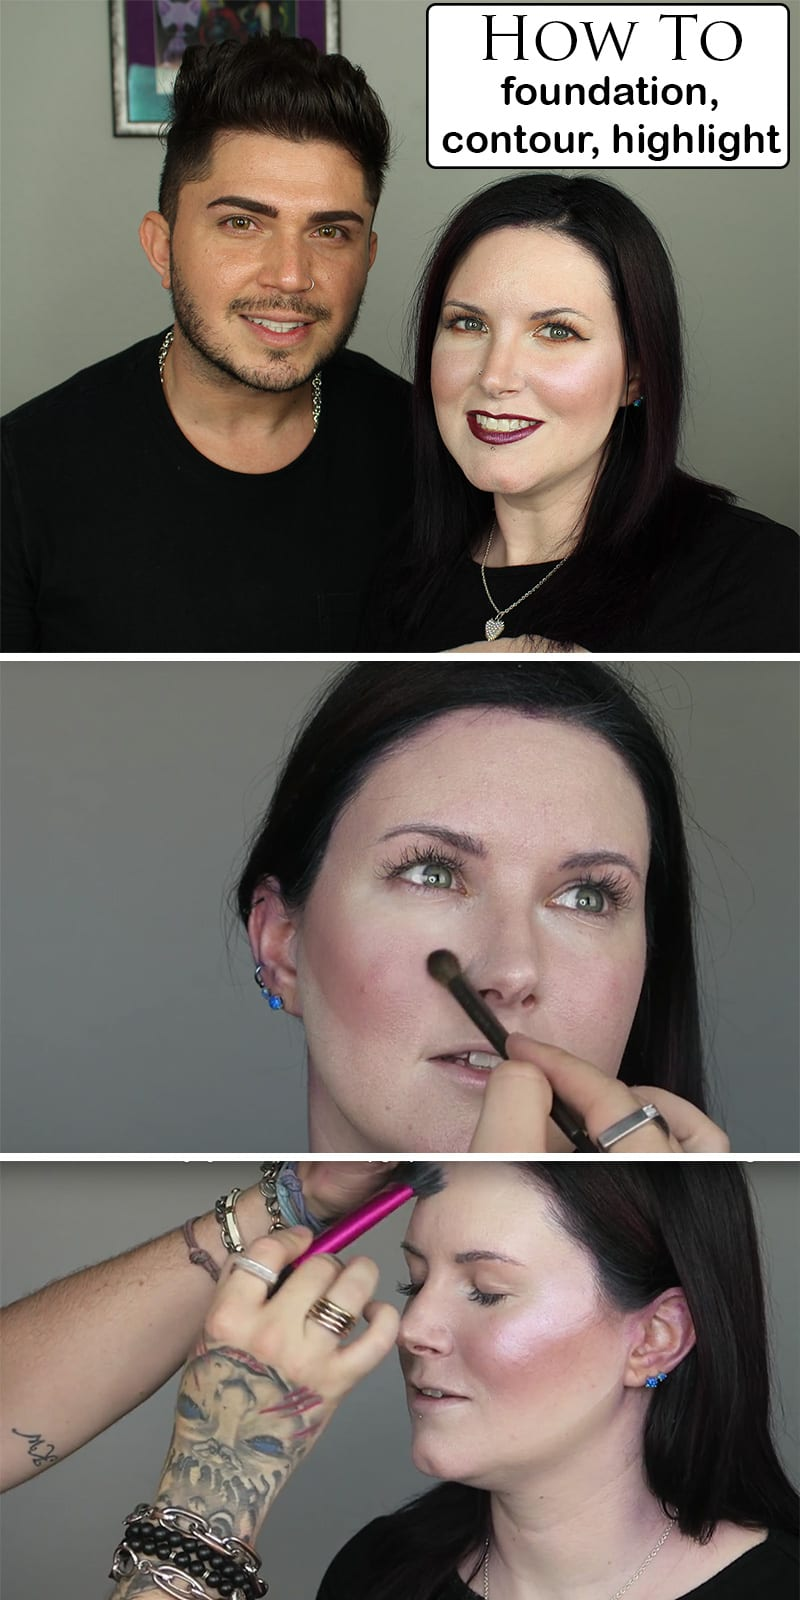 How to Apply Foundation, Contour and Highlighter